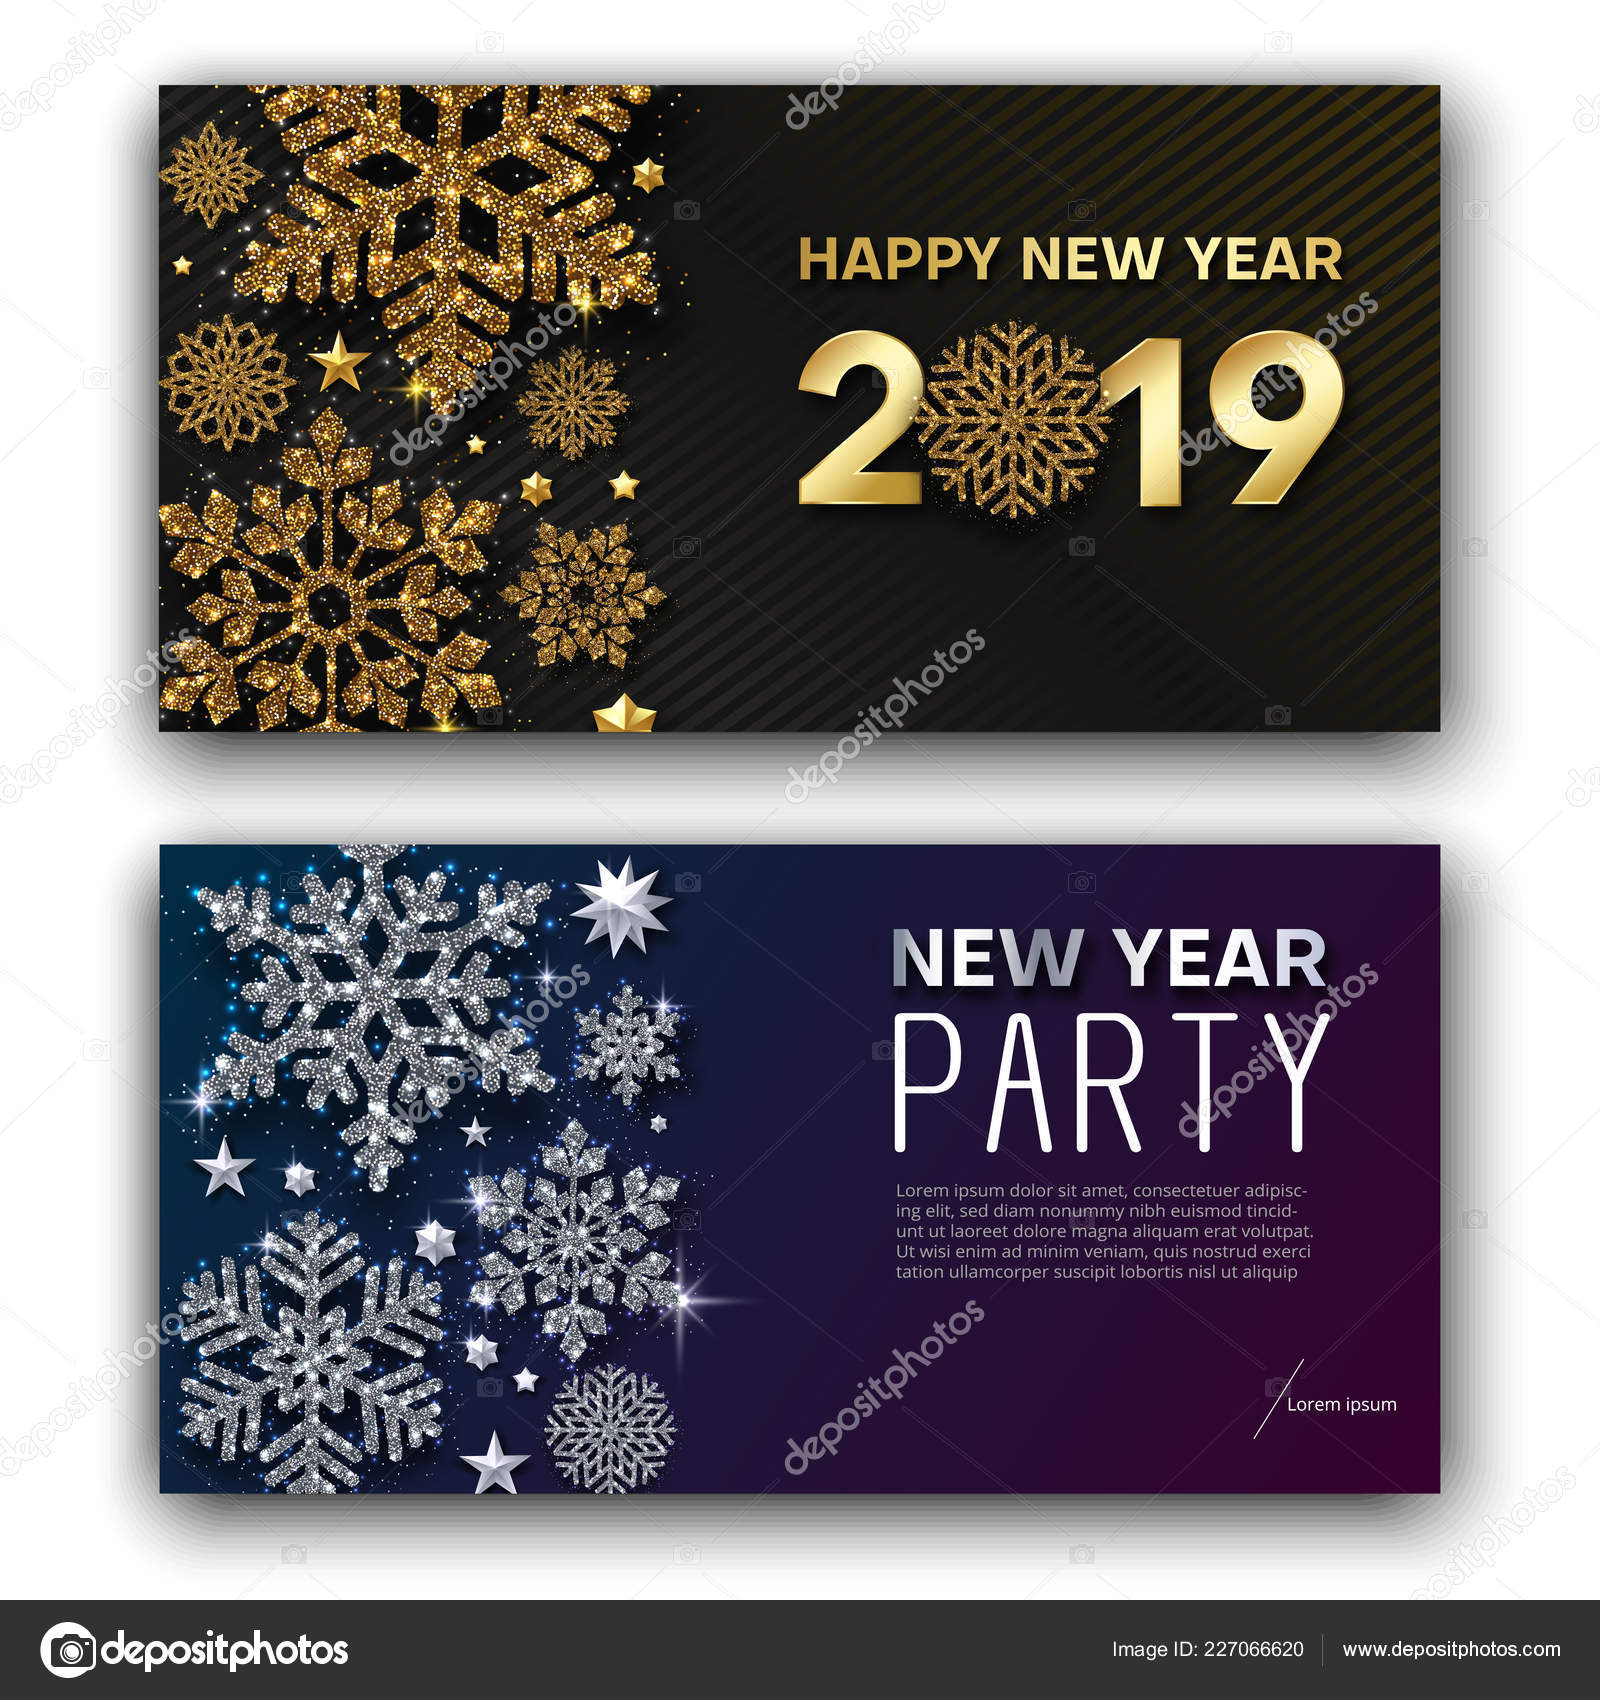 Happy New Year 2019 Greeting Card New Year Party Invitation